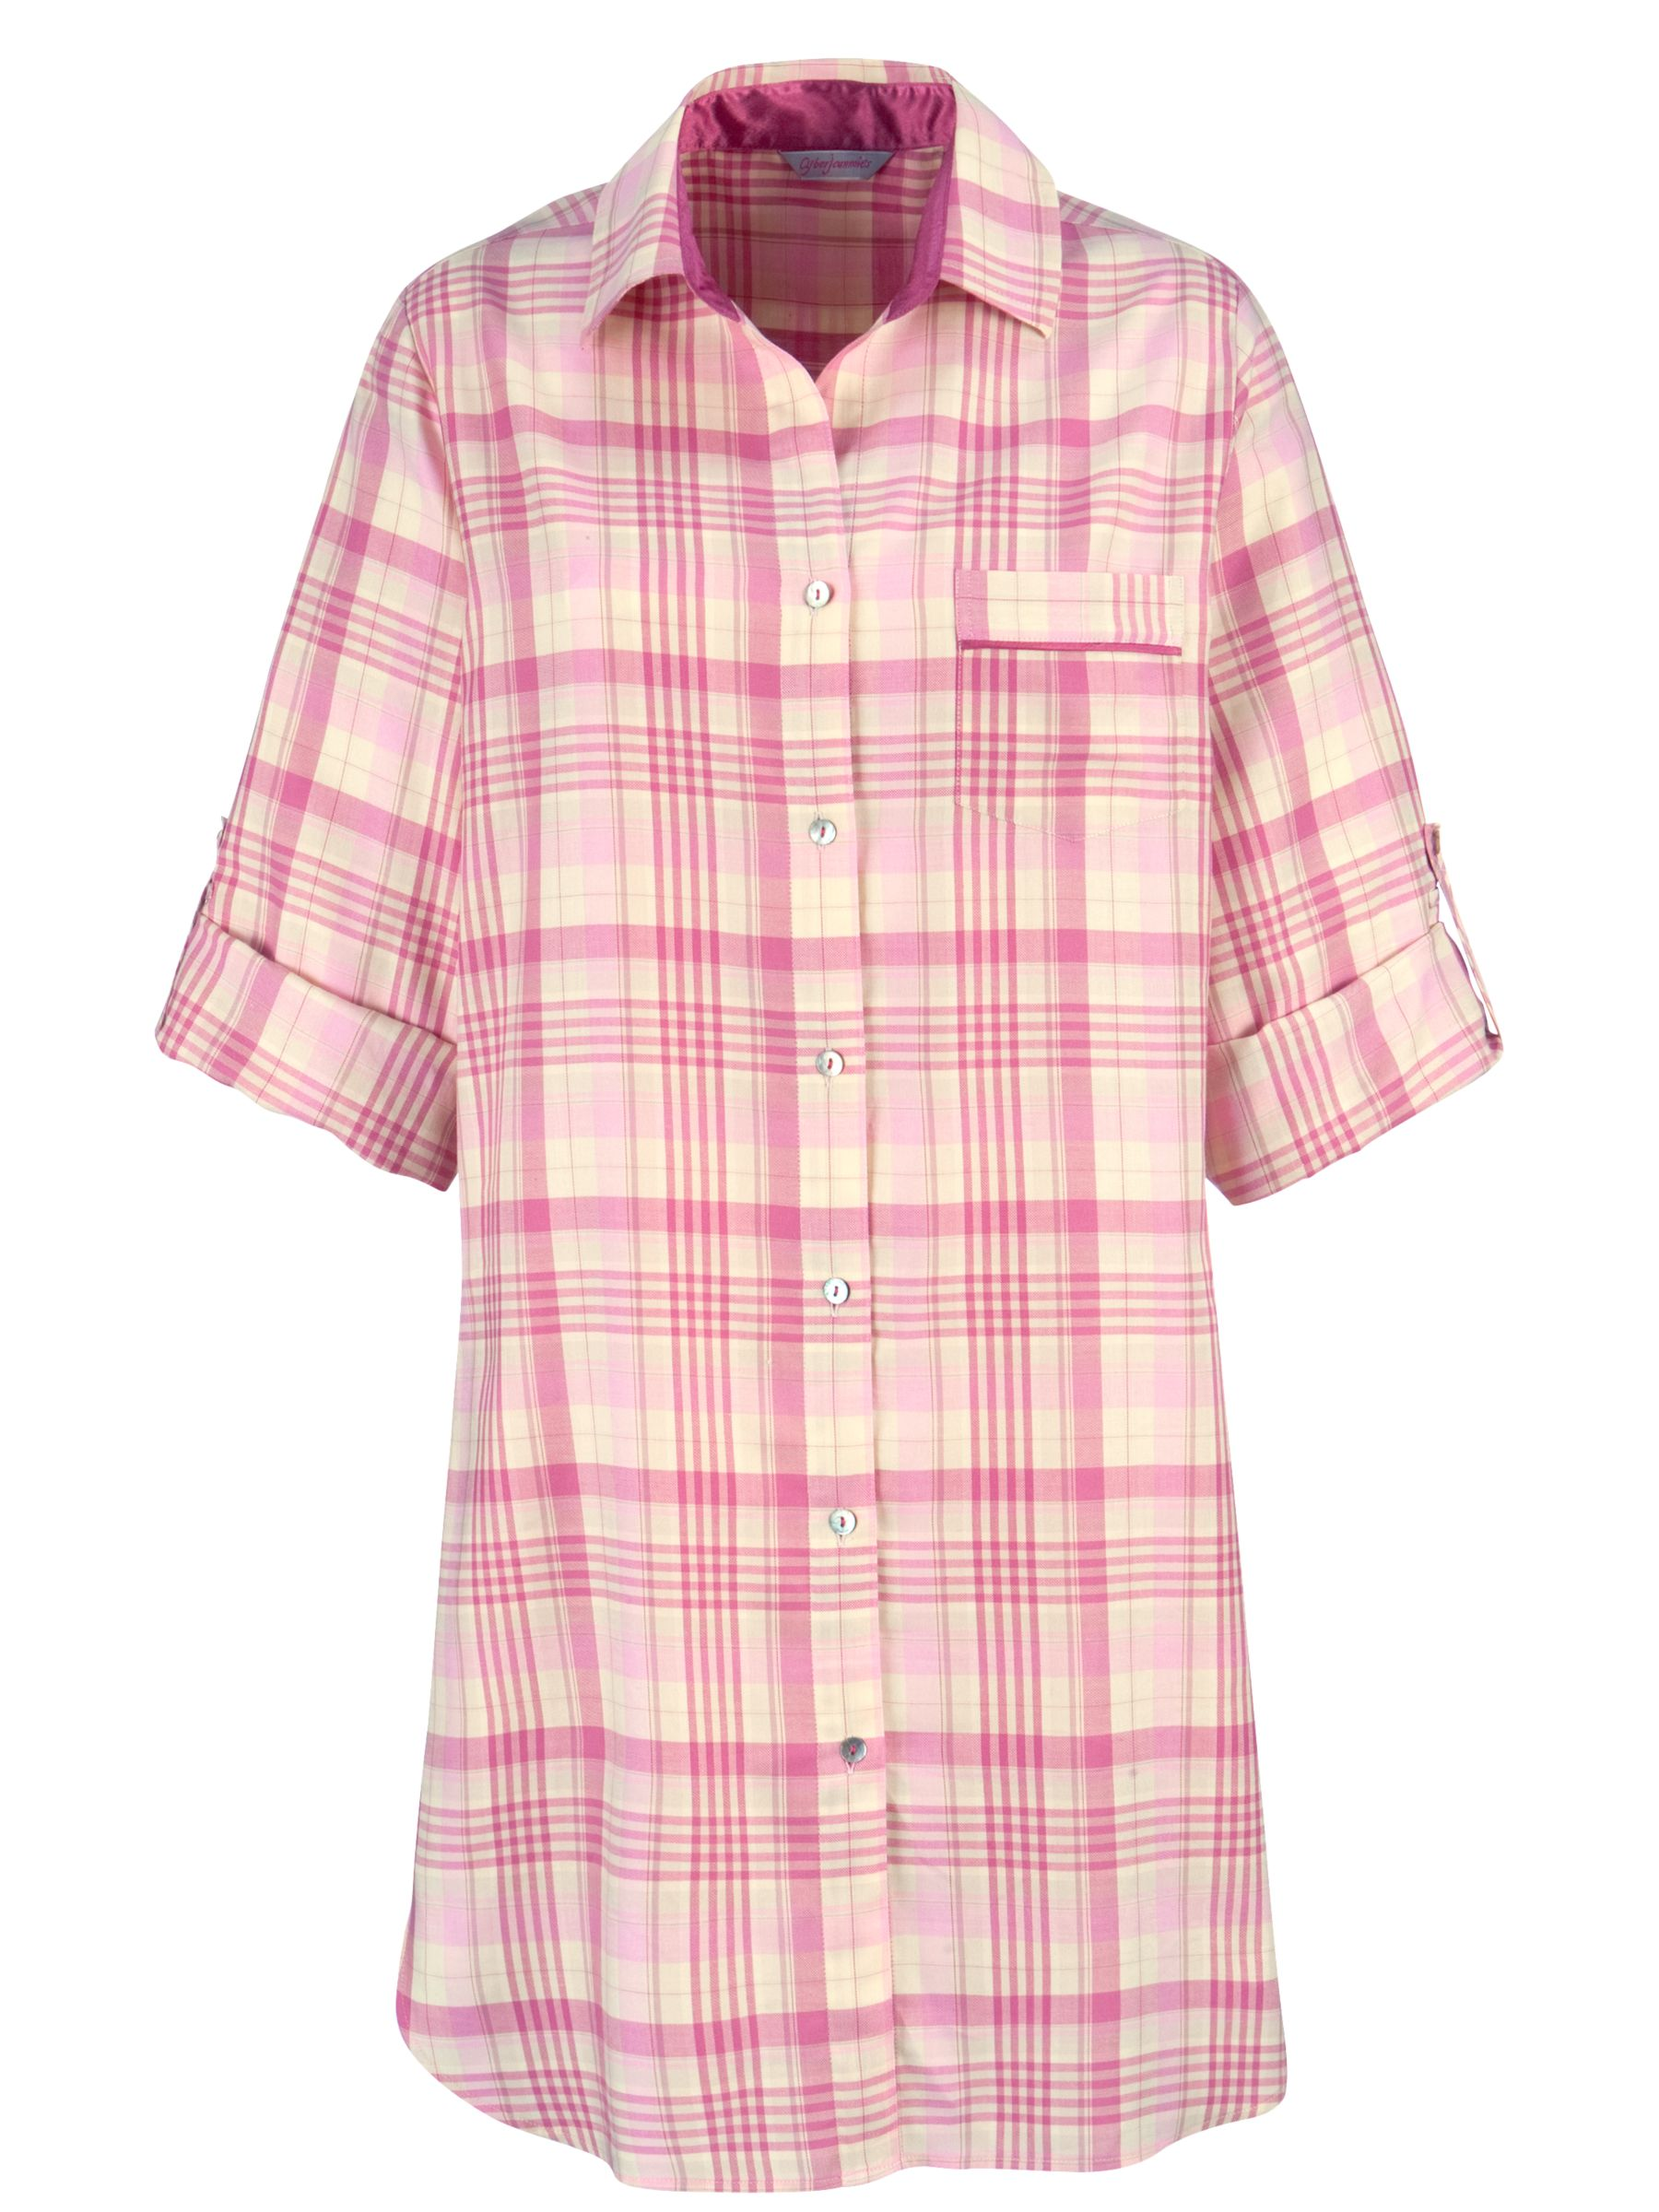 Cyberjammies Vintage Nightshirt, Orange/Pink